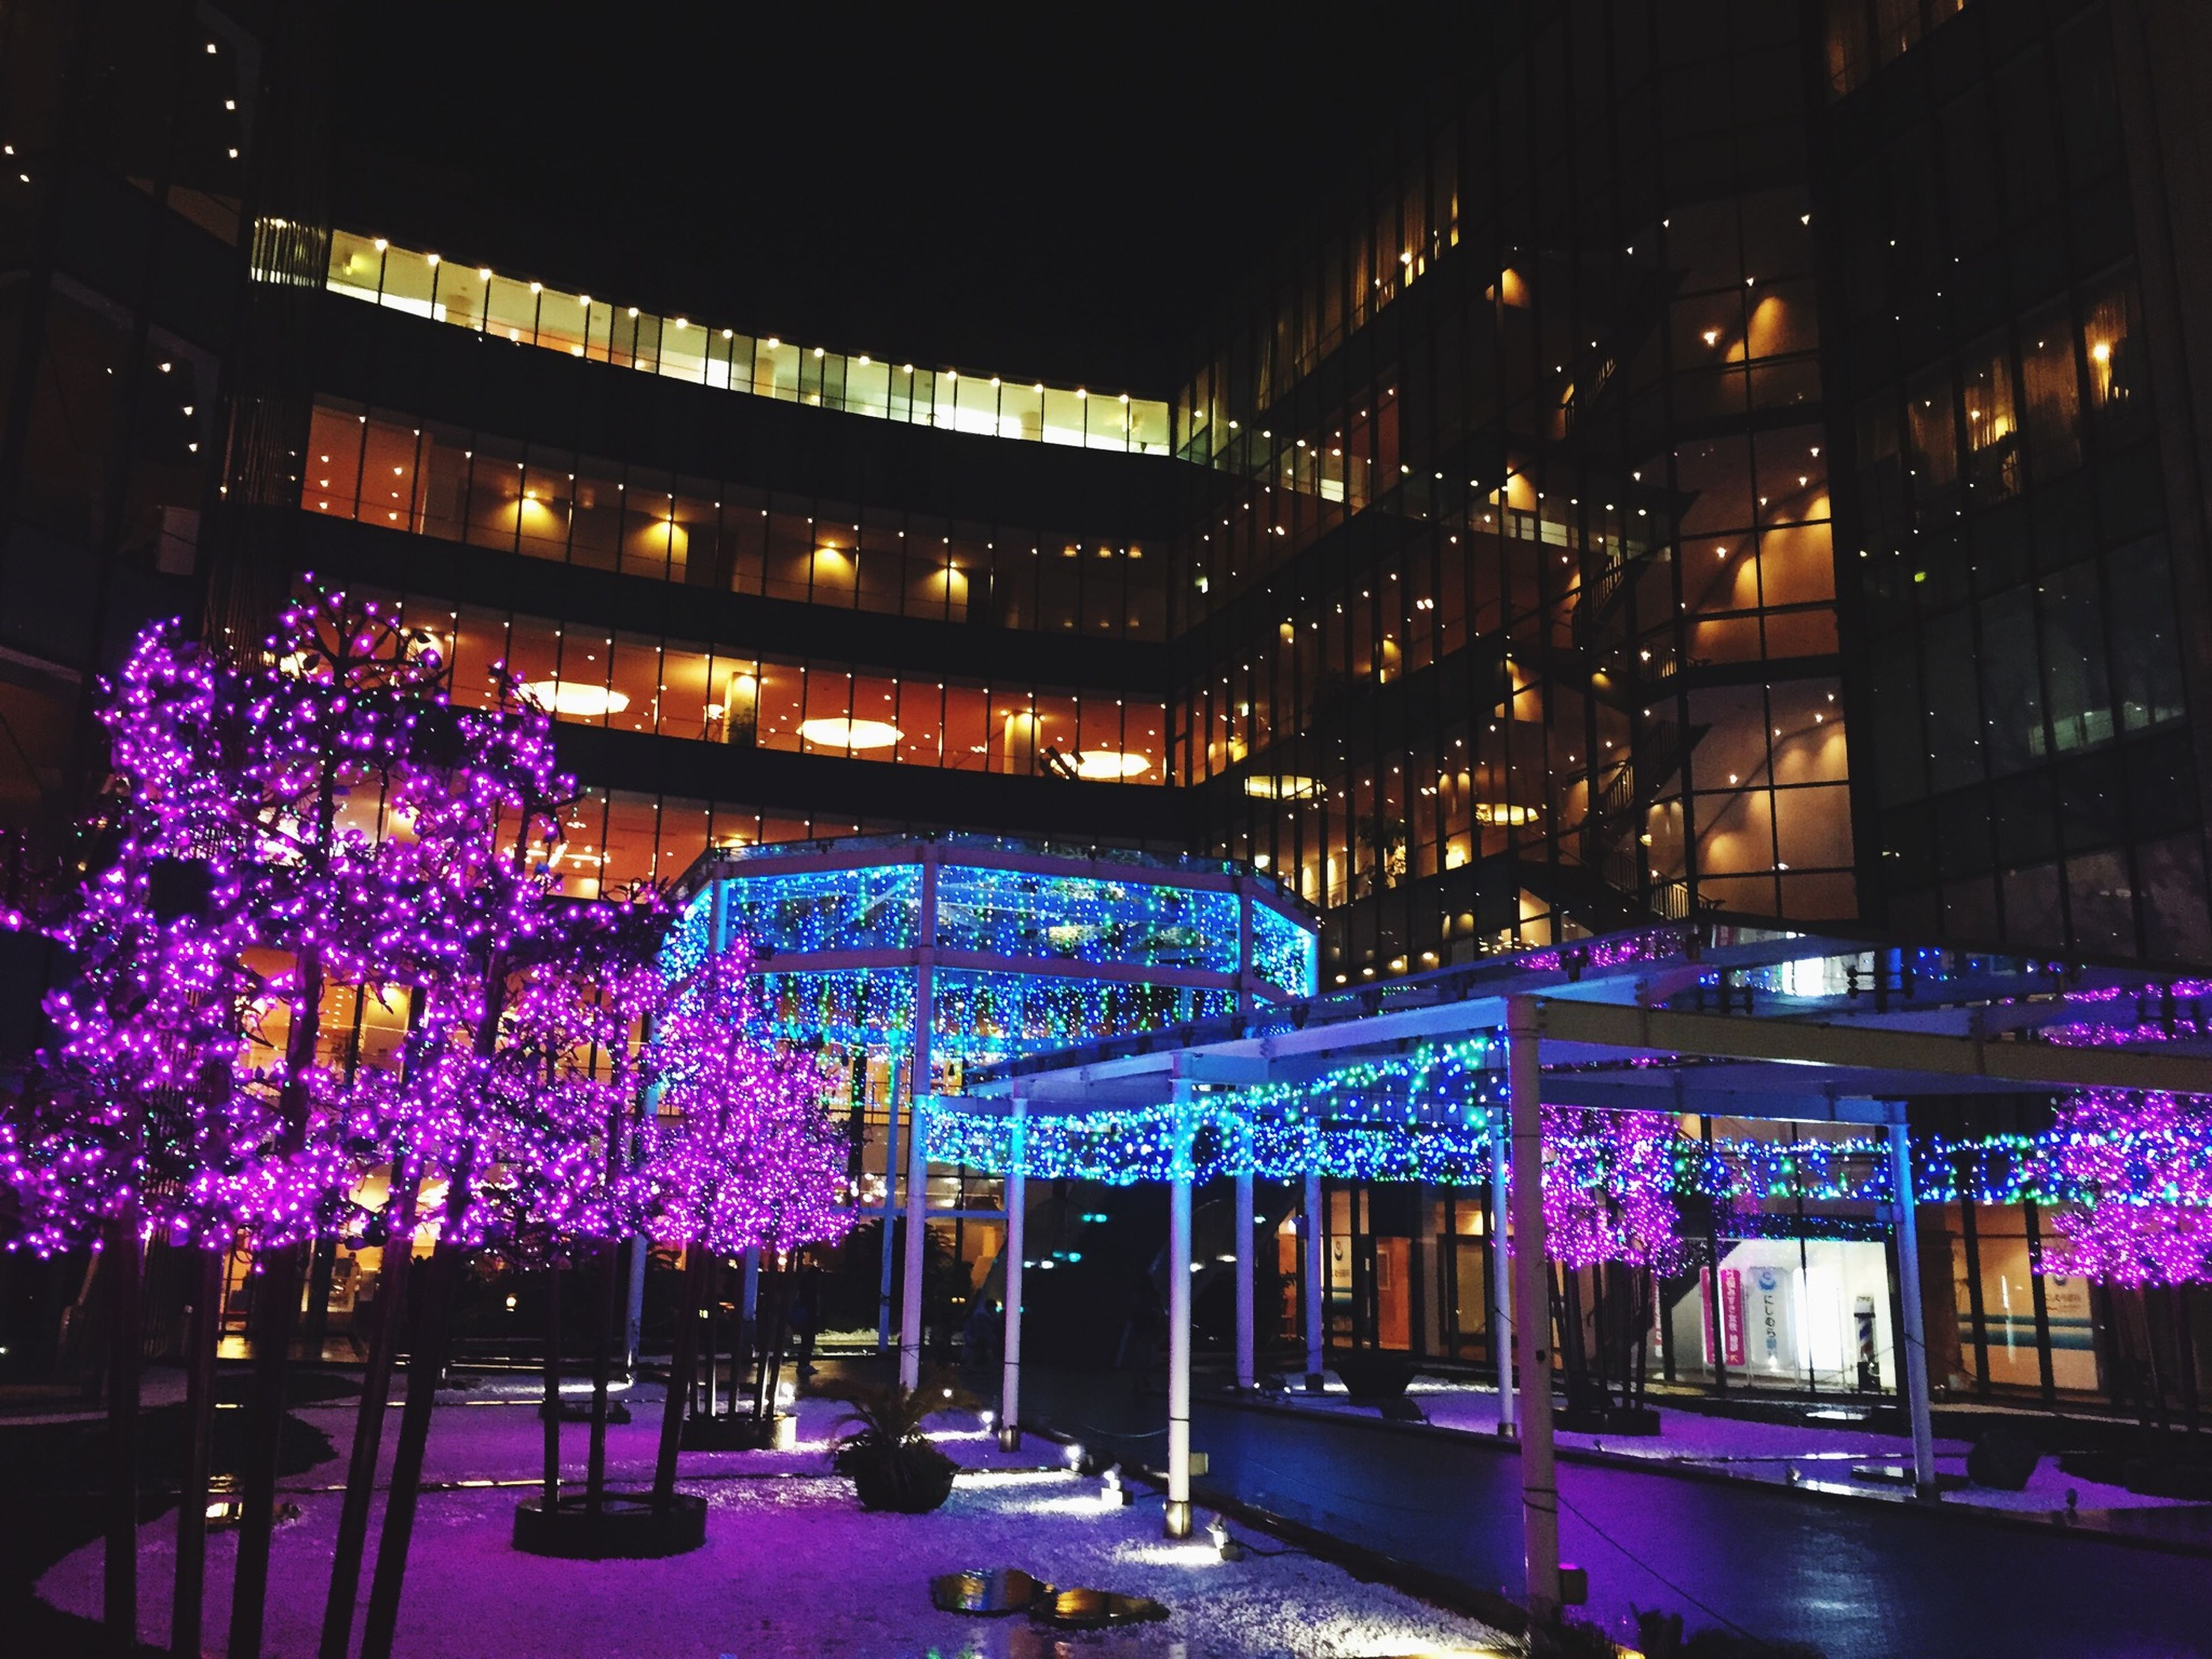 night, building exterior, illuminated, built structure, architecture, flower, city, purple, tree, growth, building, lighting equipment, outdoors, no people, plant, street light, city life, window, nature, pink color